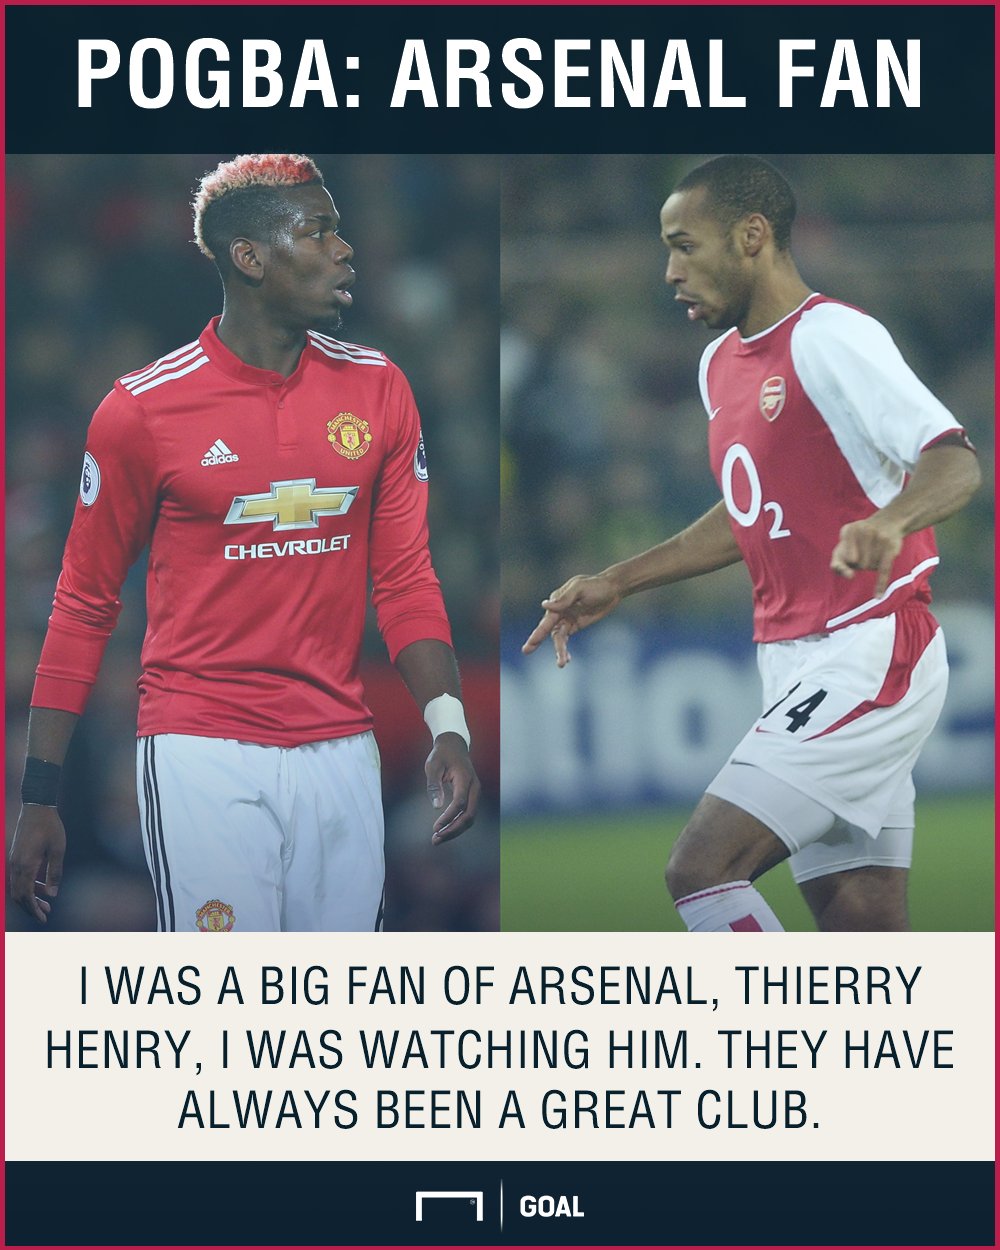 Paul Pogba Arsenal Thierry Henry fan